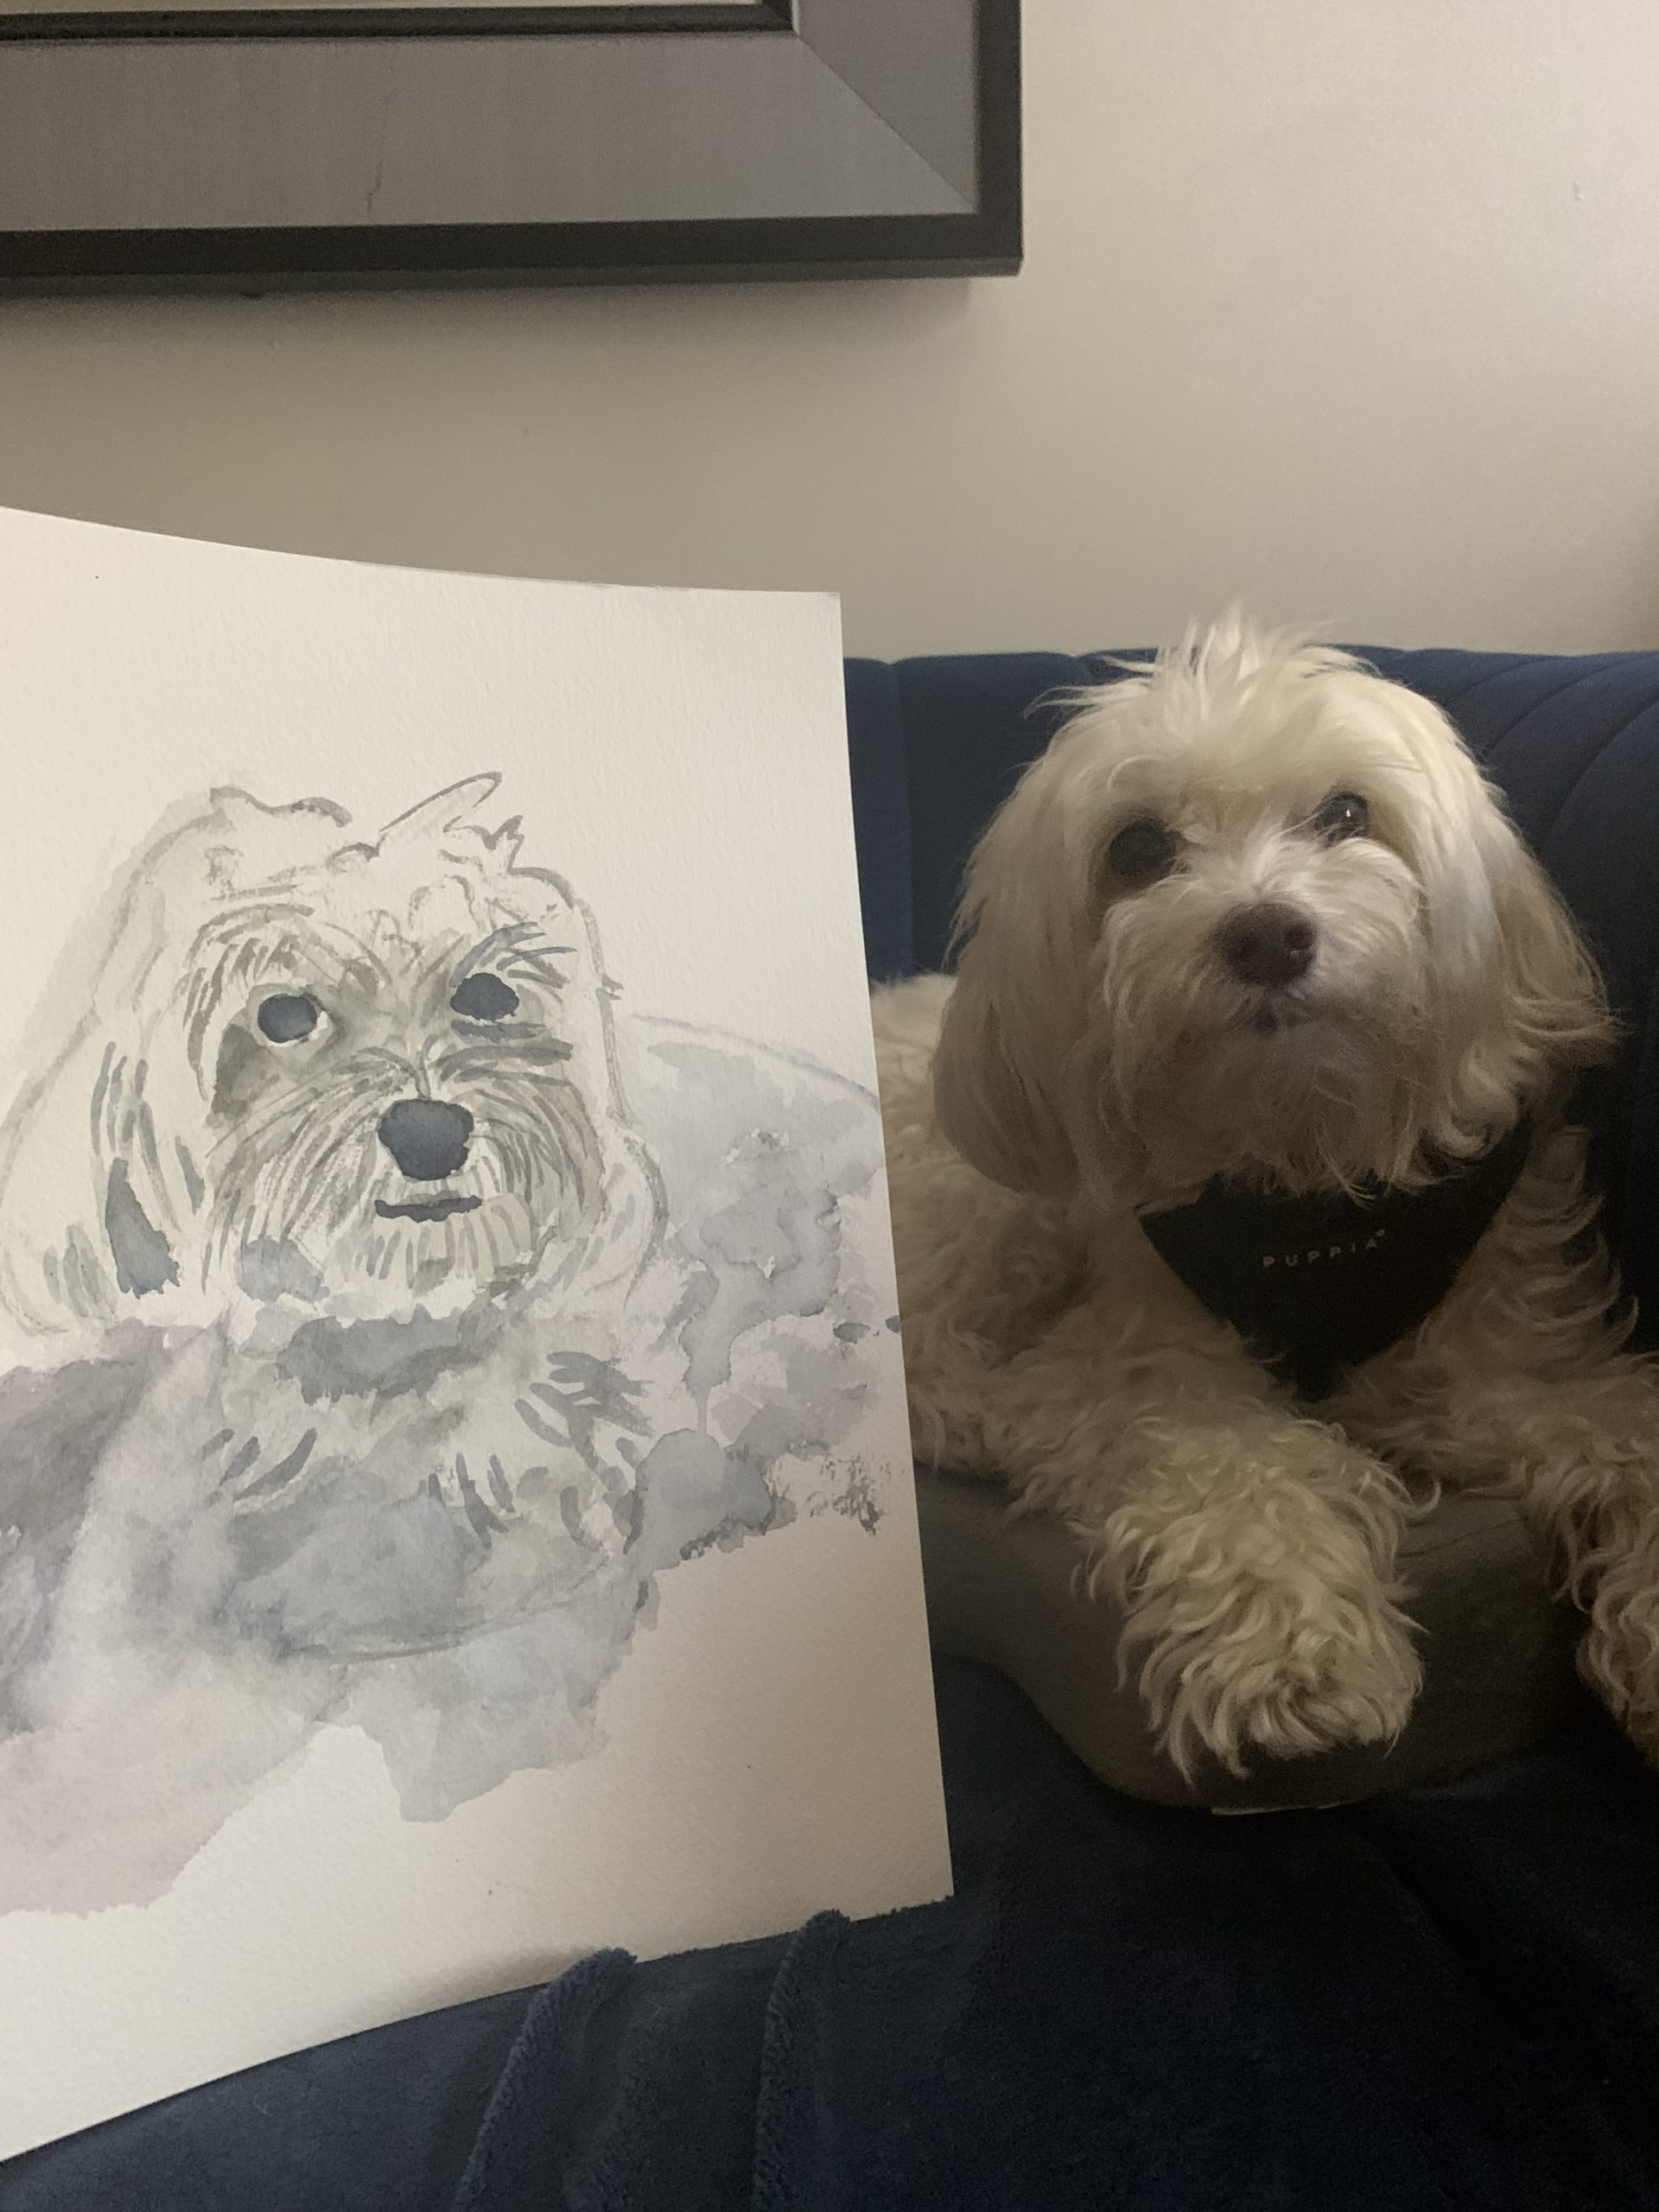 Feeling Creative? Here's A Guide To Draw Your Doghttps://www.newyorkdognanny.com/new-york-dog-nanny-site-blog/feeling-creative-heres-a-guide-to-draw-your-dog/